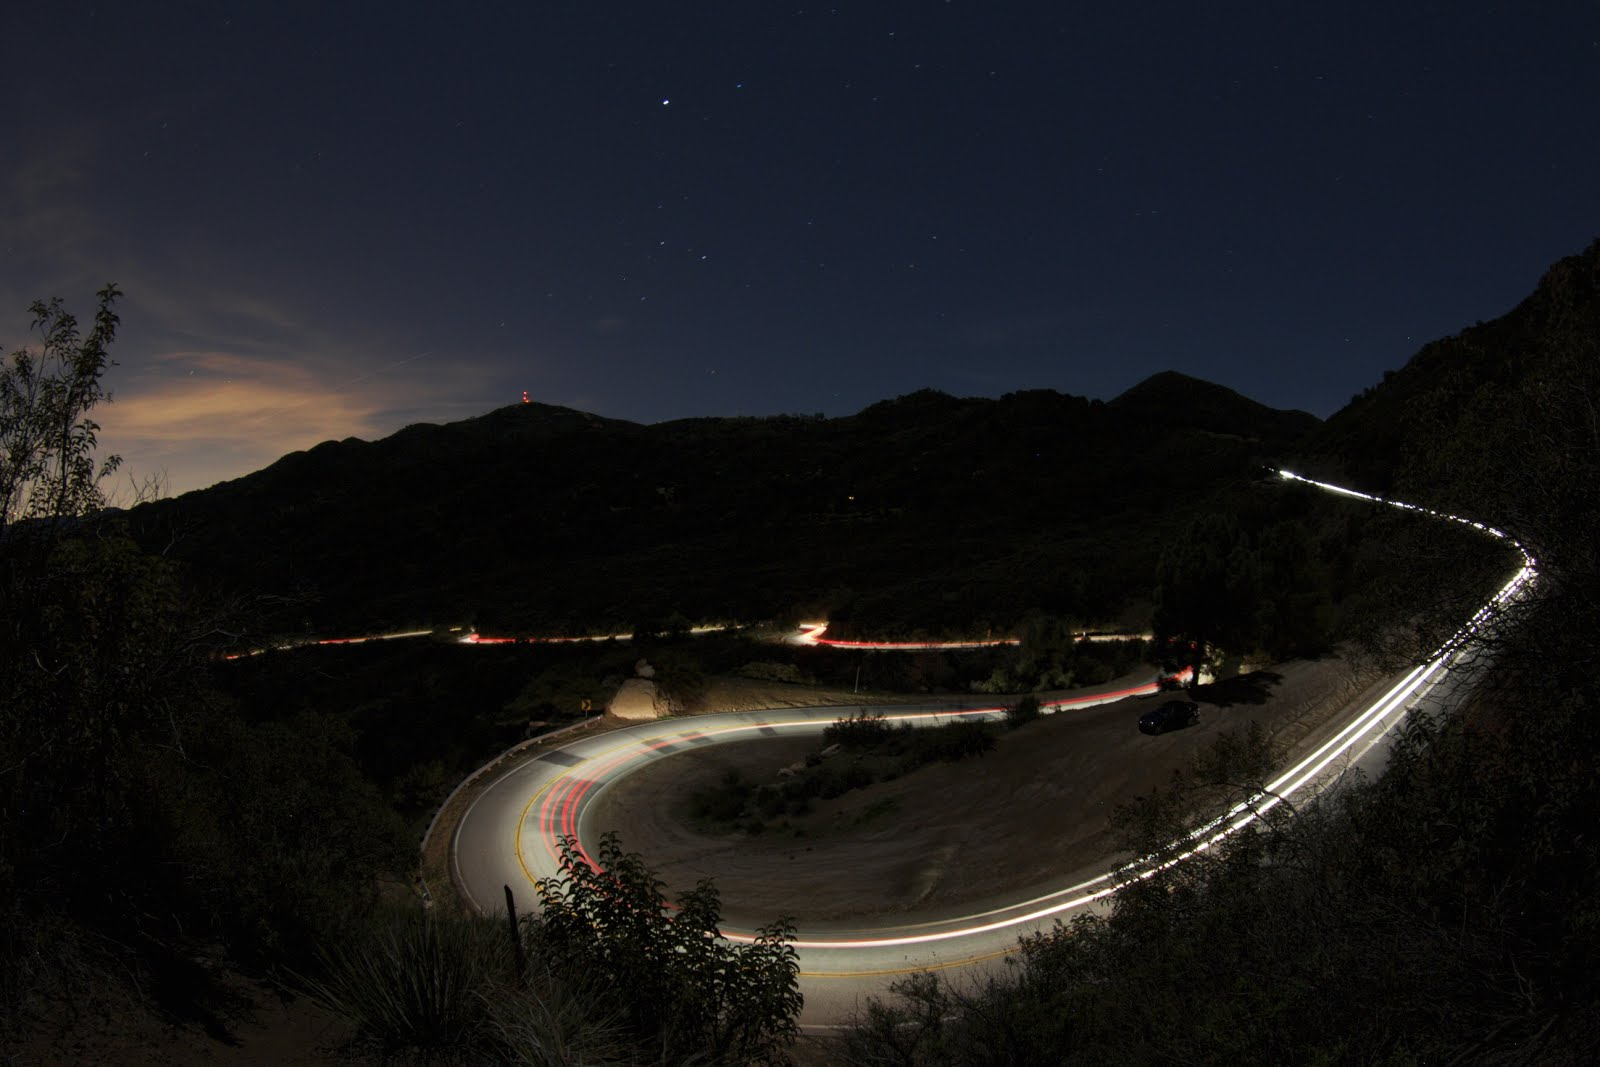 Sportbike Aerials, The Snake Mulholland Hwy - YouTube